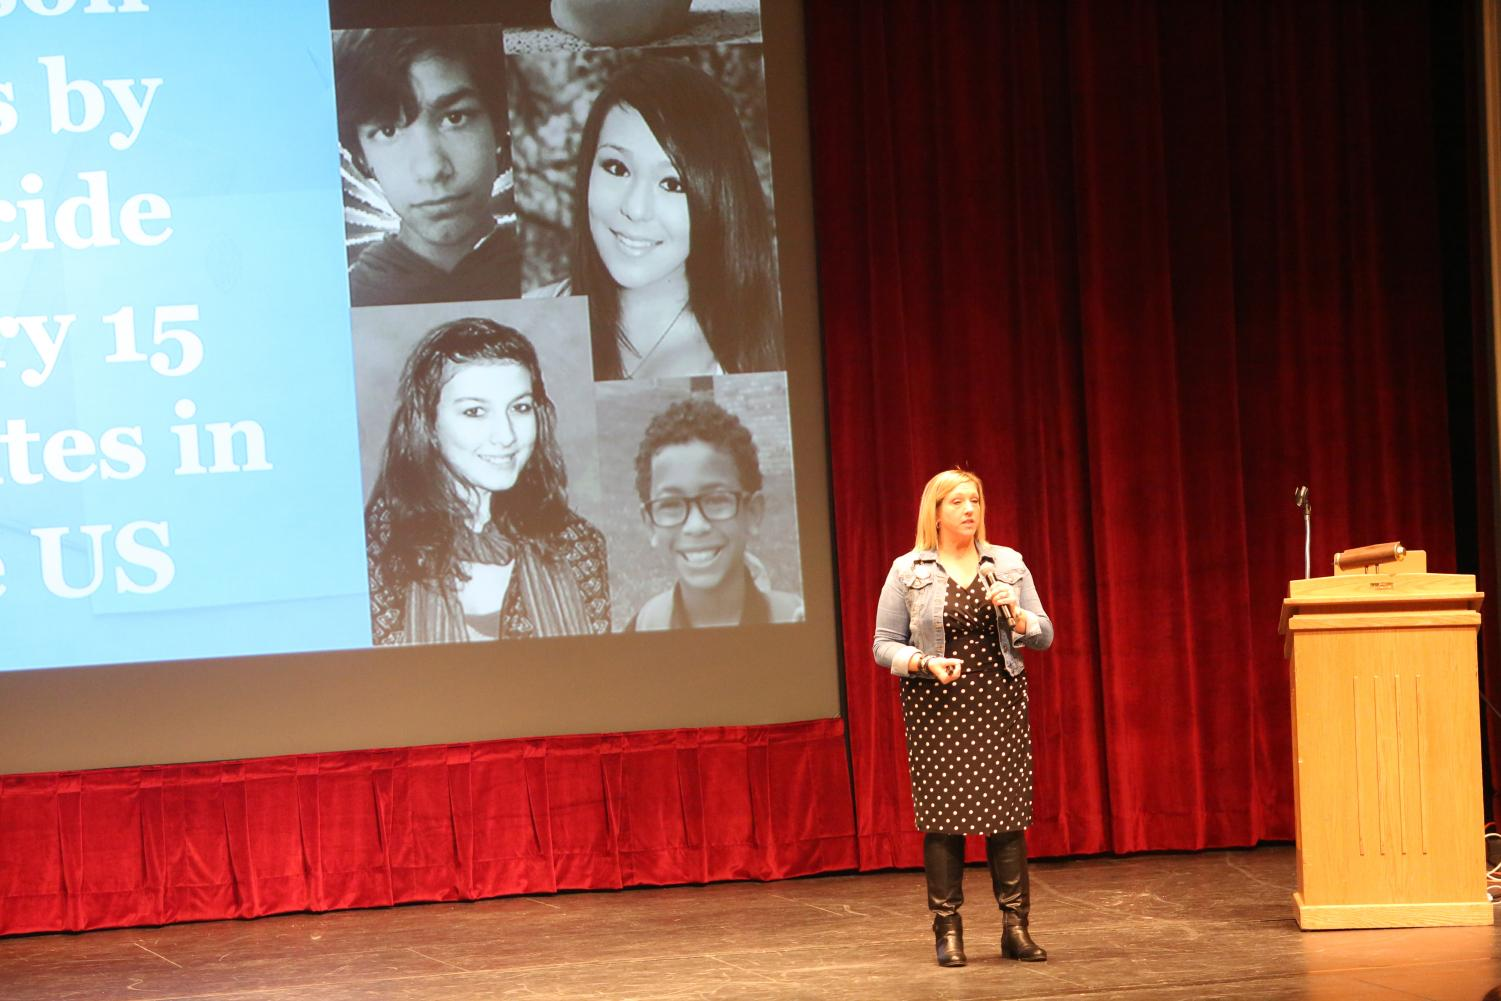 Tina Meier shared the story of her daughter Megan's suicide from cyber bullying.